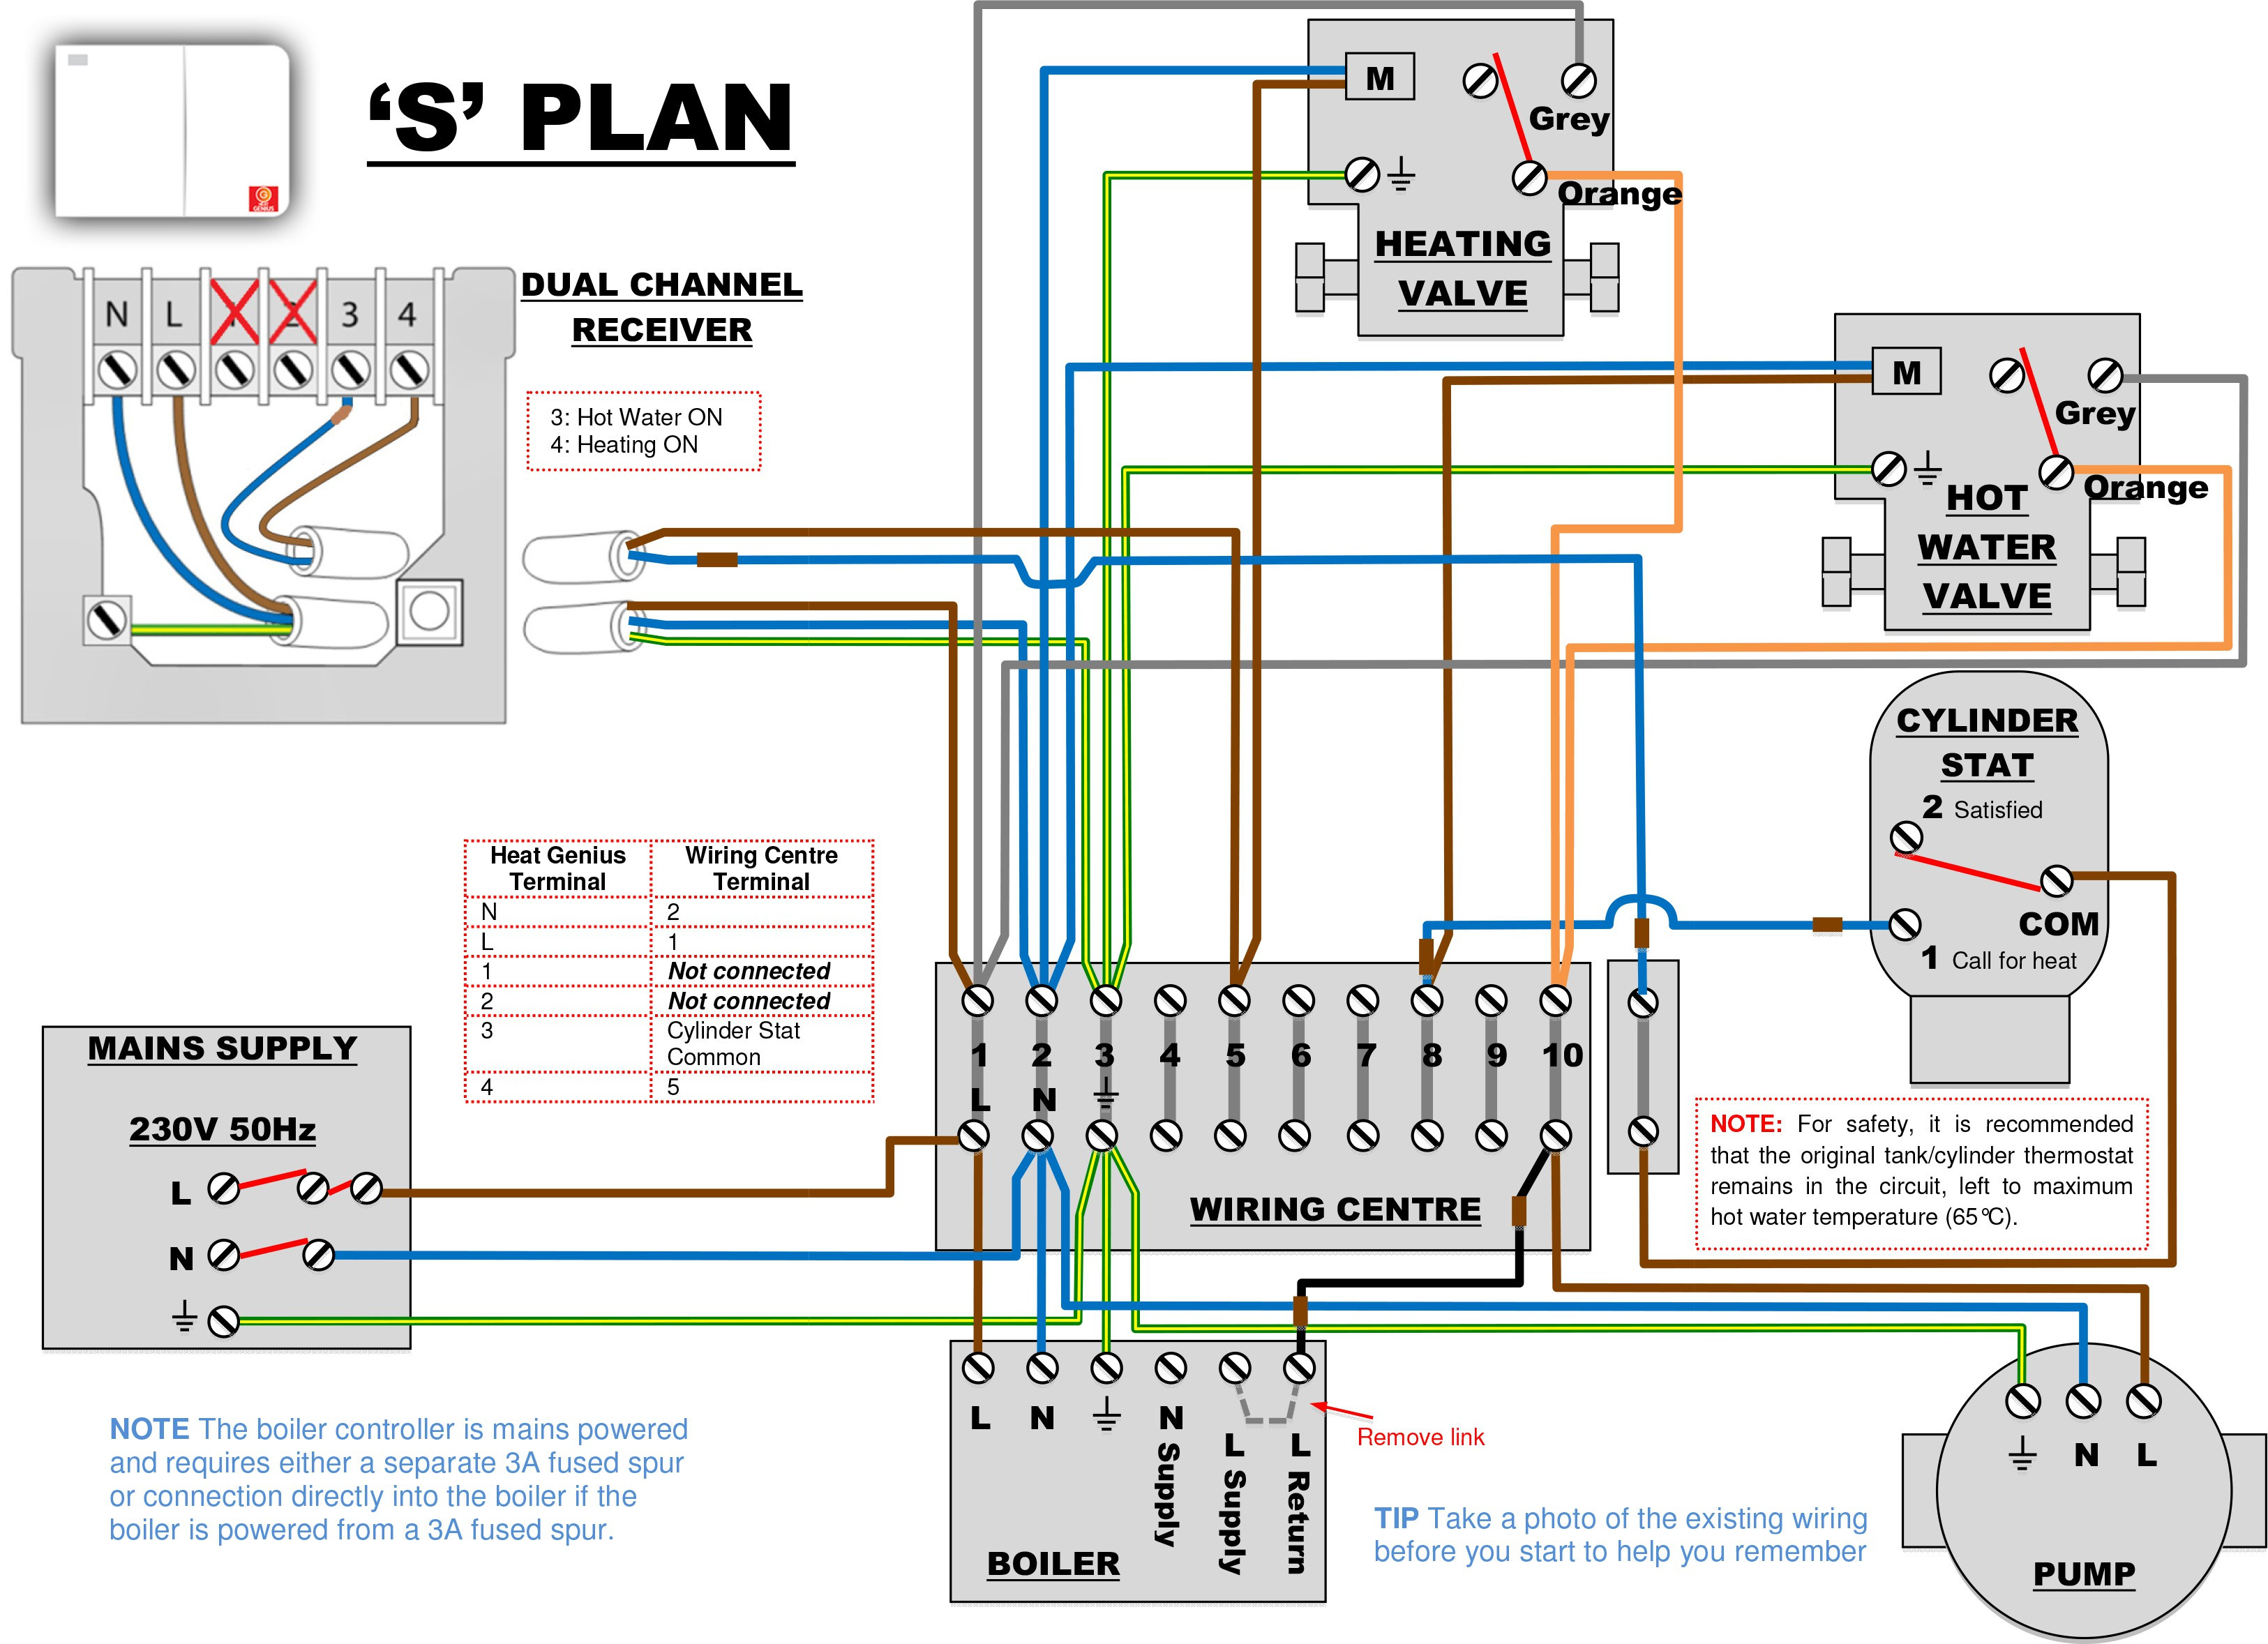 Nest T Stat Wiring Diagram | Wiring Diagram - Nest Stat Wiring Diagram